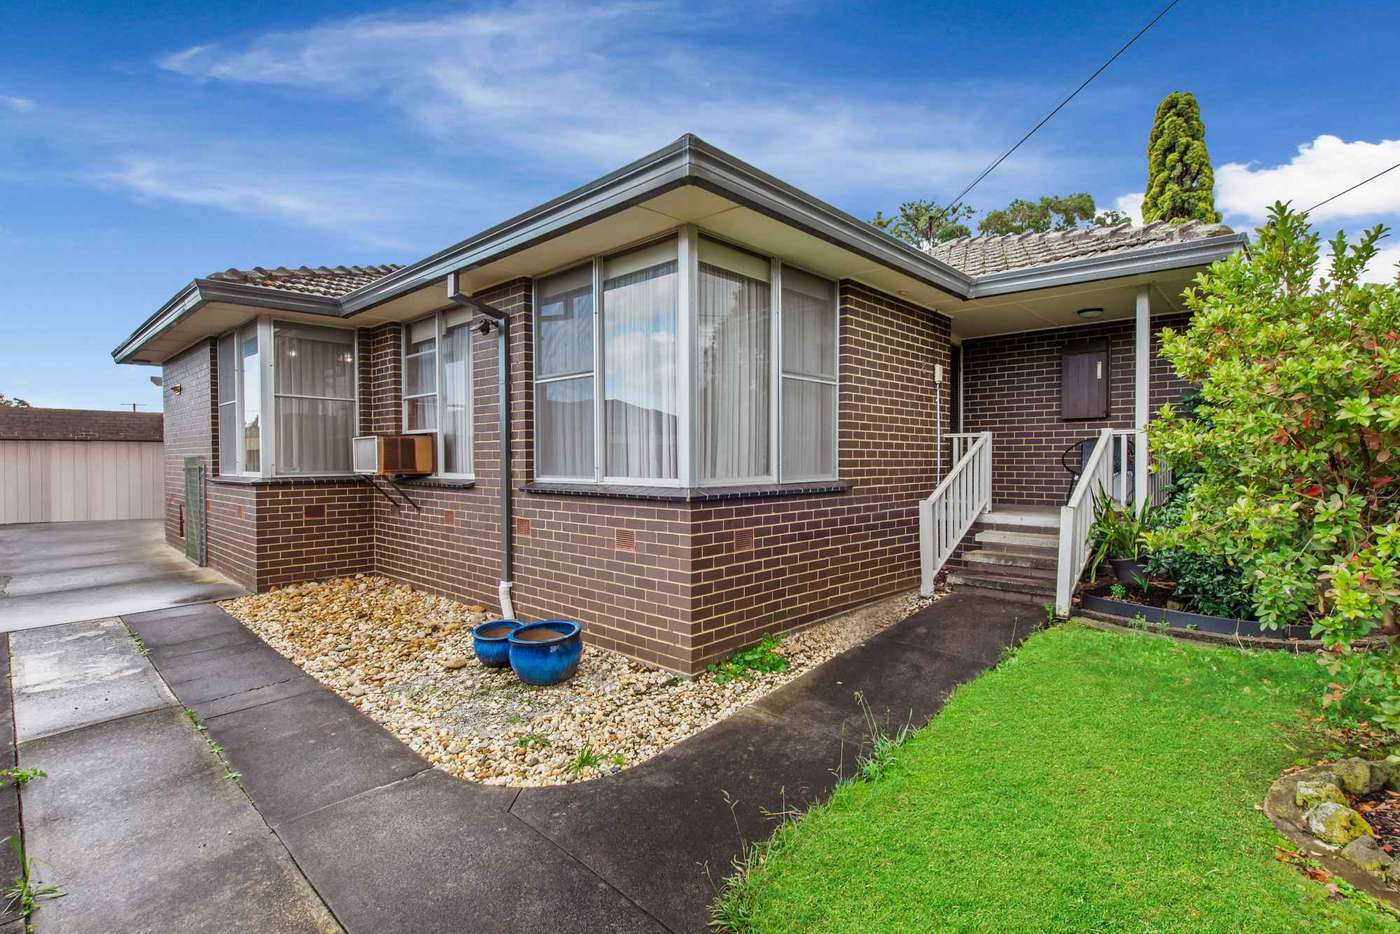 Main view of Homely house listing, 8 Richardson Street, Narre Warren VIC 3805